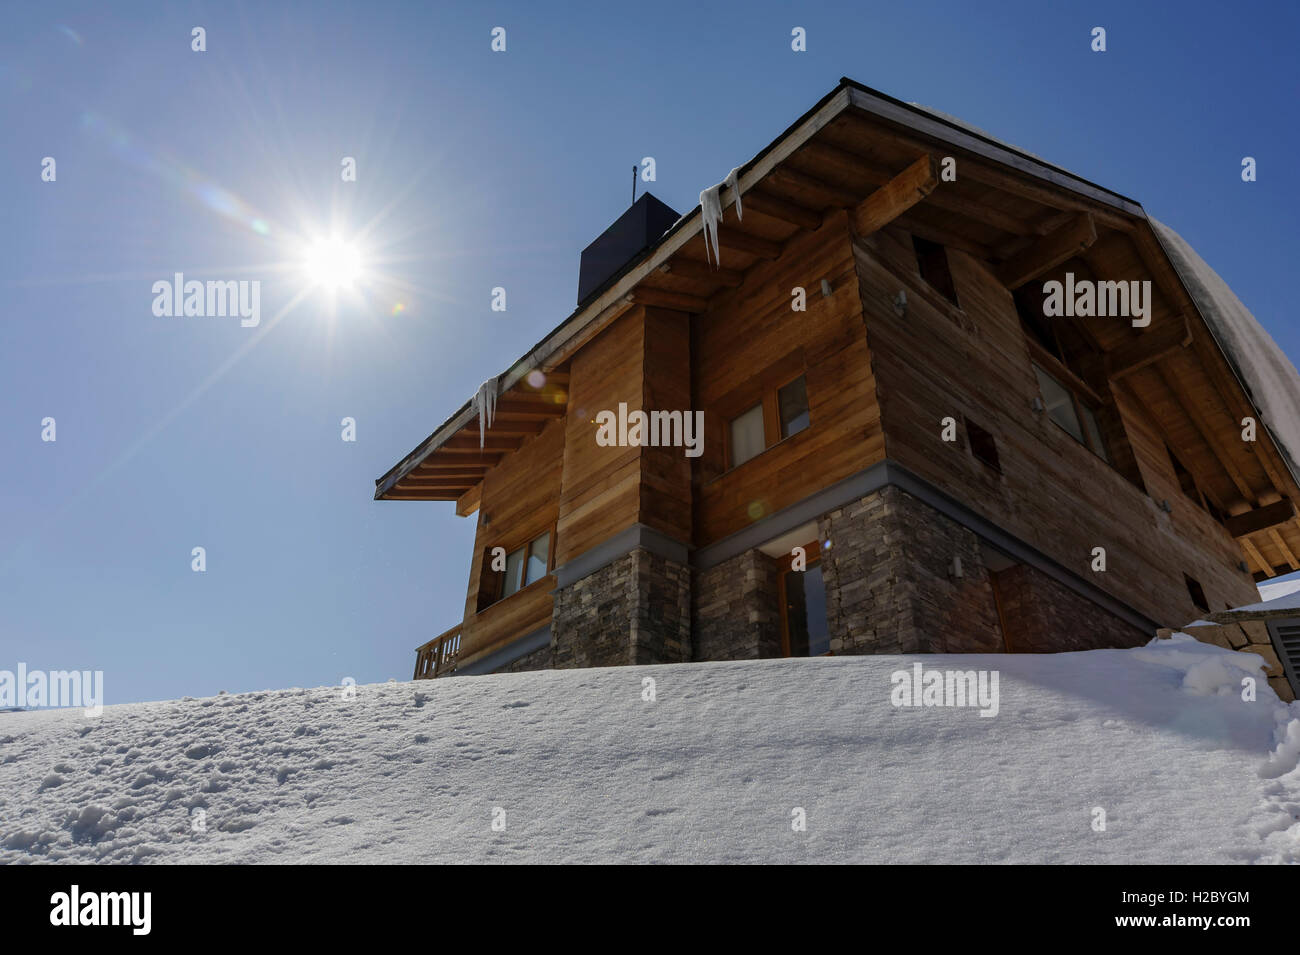 A chalet in wood and stone during winter in Mzaar Kfardebian ski resort in Lebanon (contre-jour) - Stock Image